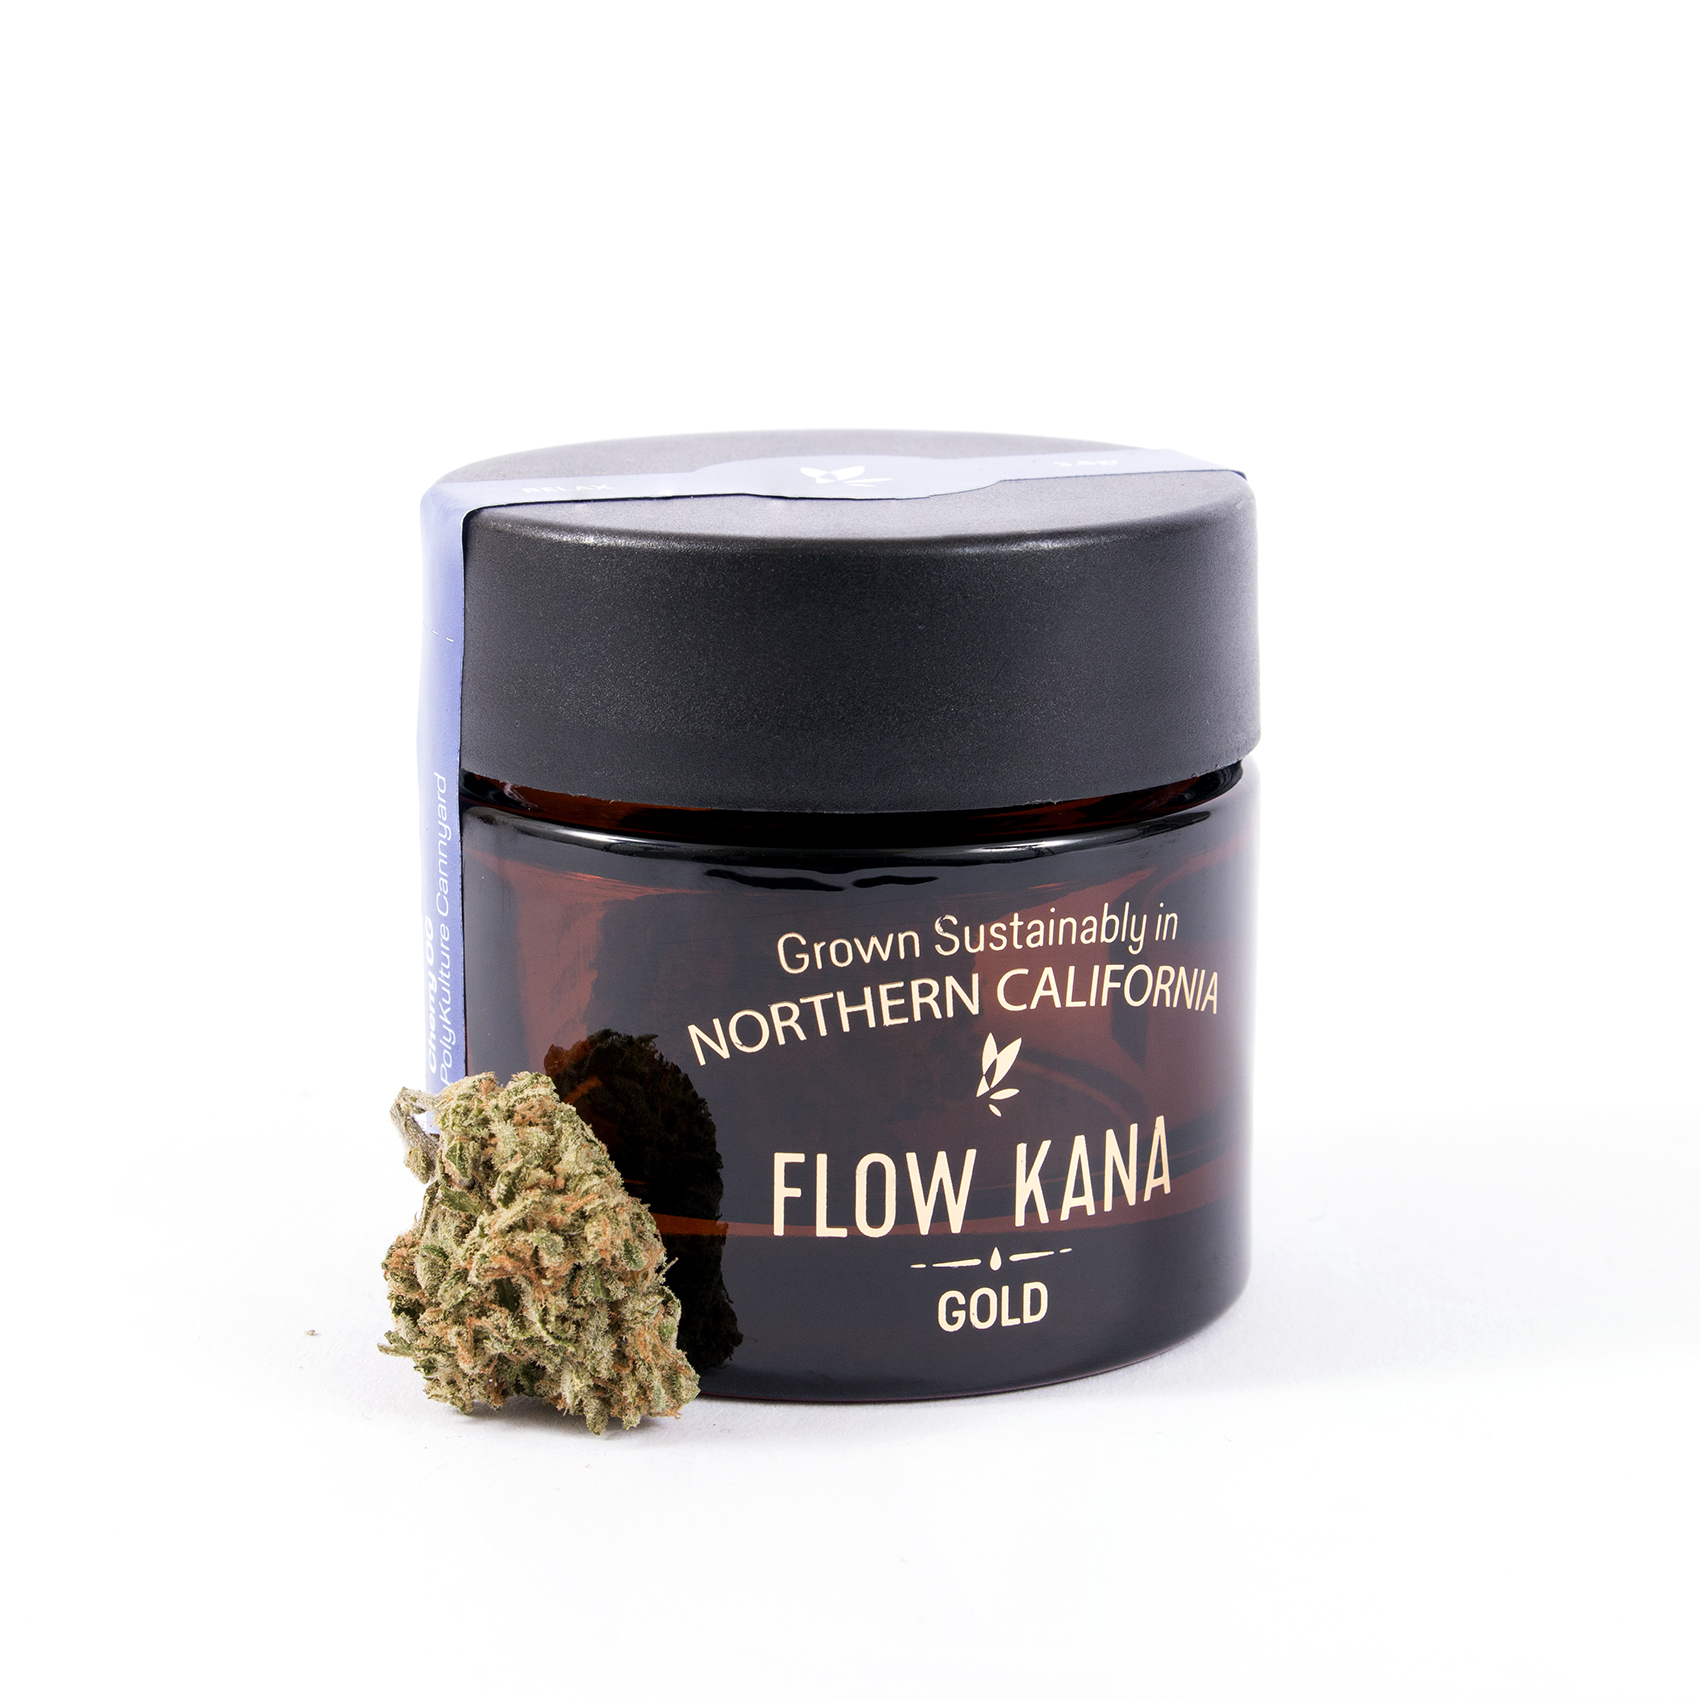 Flow Kana - Buy any Flow Kana 1/8th or Pre-roll pack and get a Flow Kana pre-roll for $1.00!*